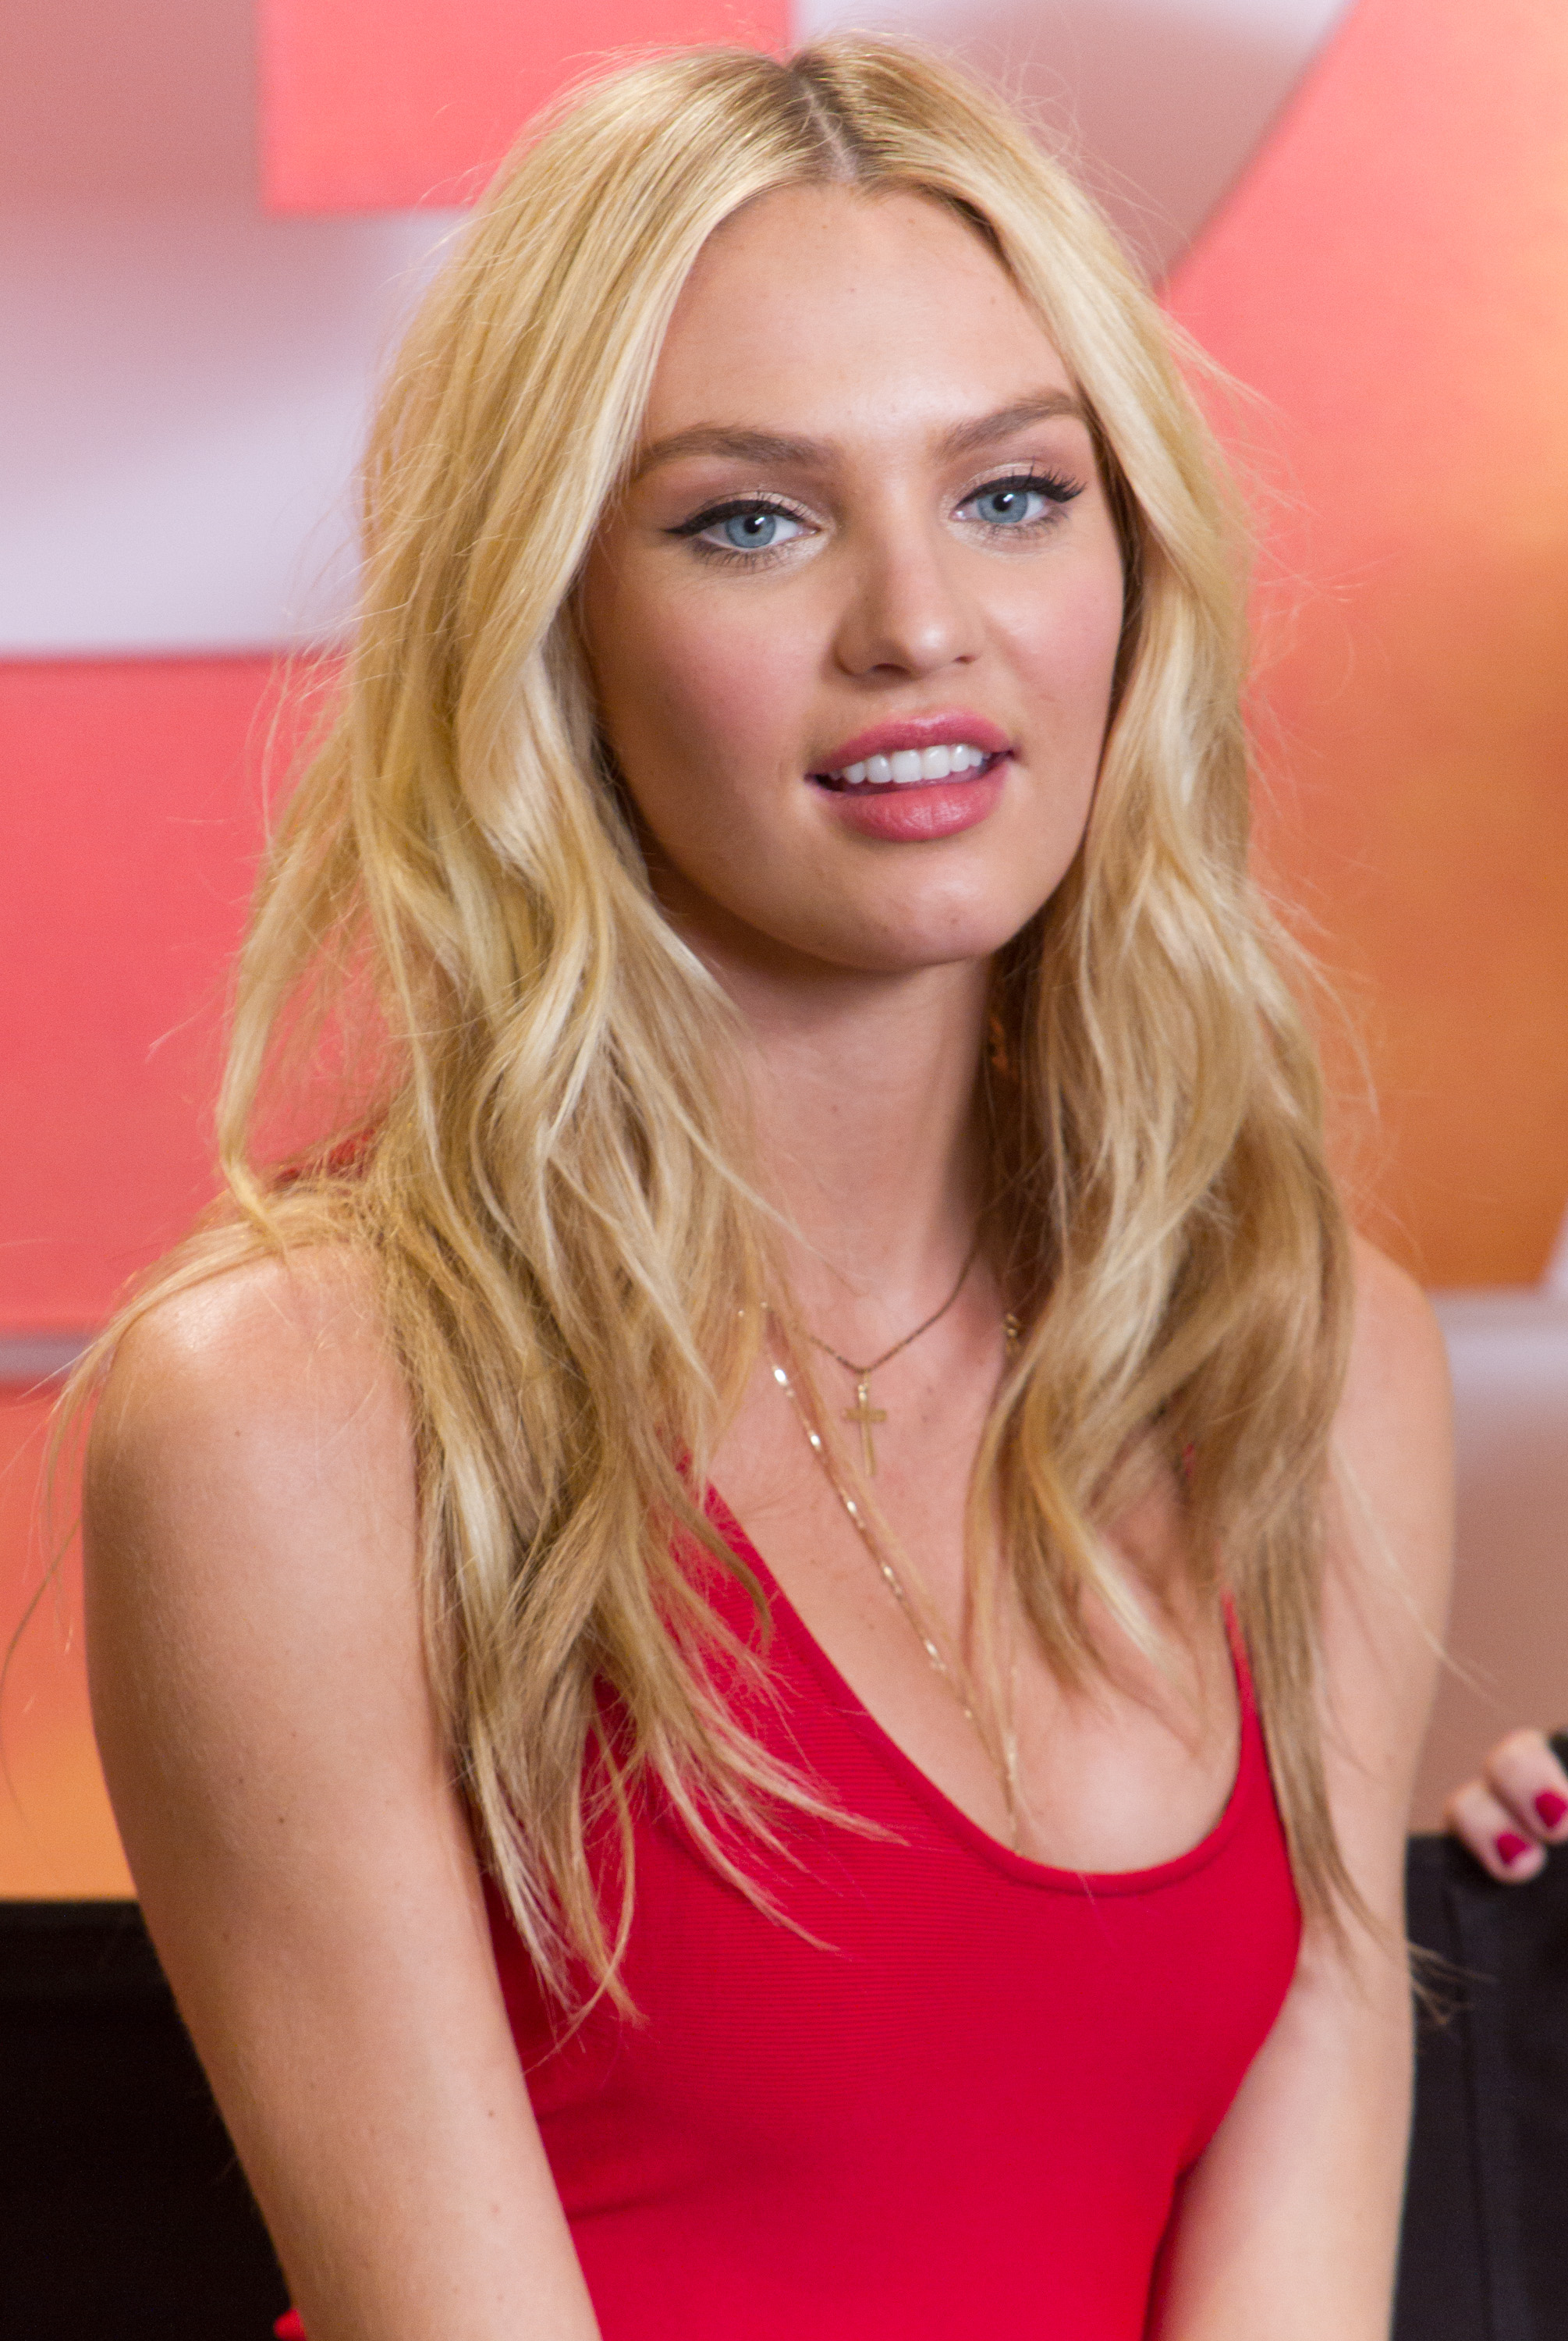 Candice Swanepoel Photo 2408 Of 6836 Pics Wallpaper